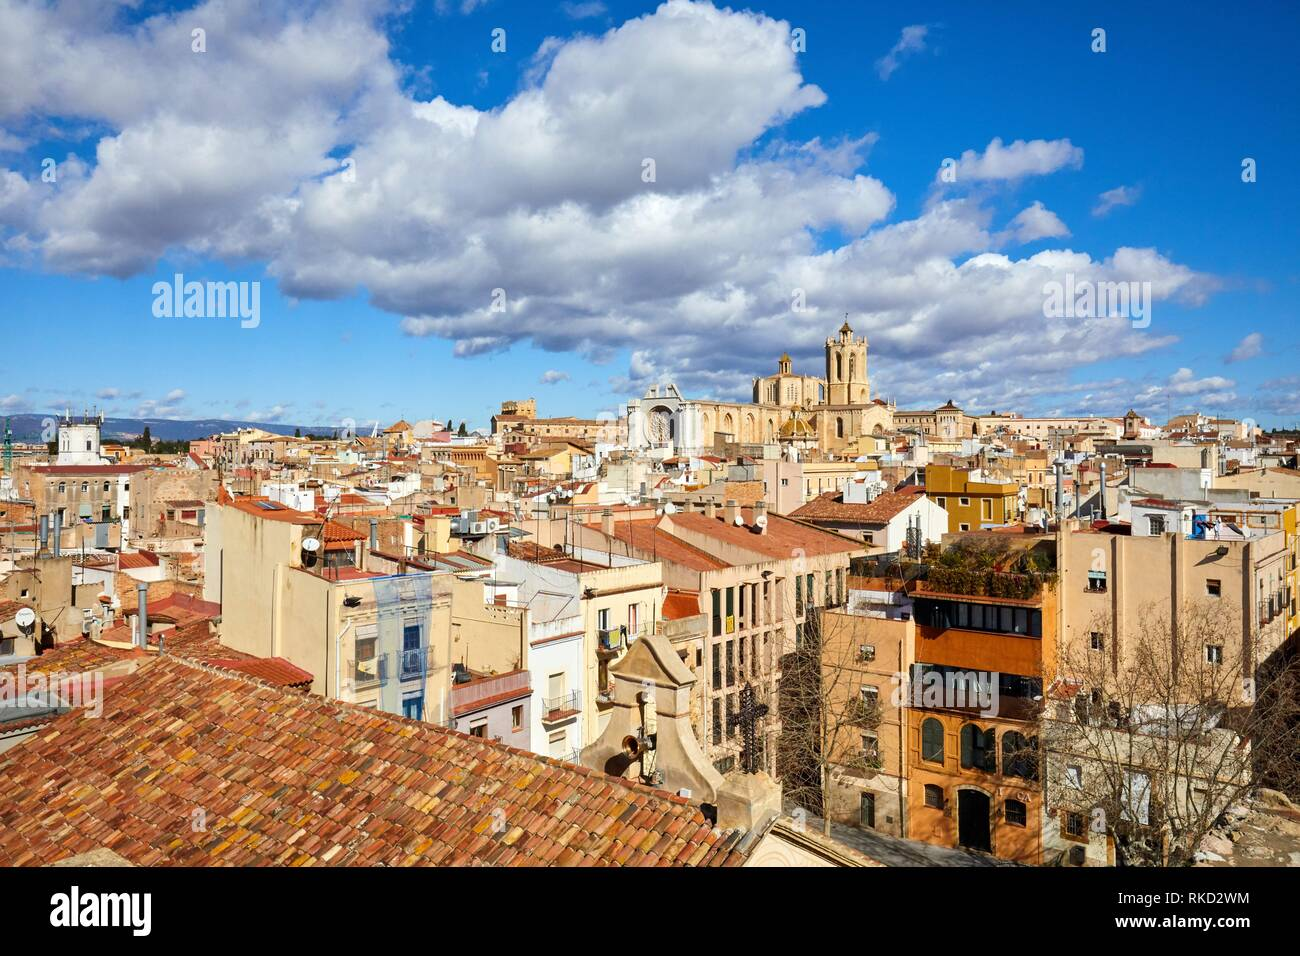 Cathedral, Plaça del Rei, Tarragona City, Catalonia, Spain, Europe - Stock Image